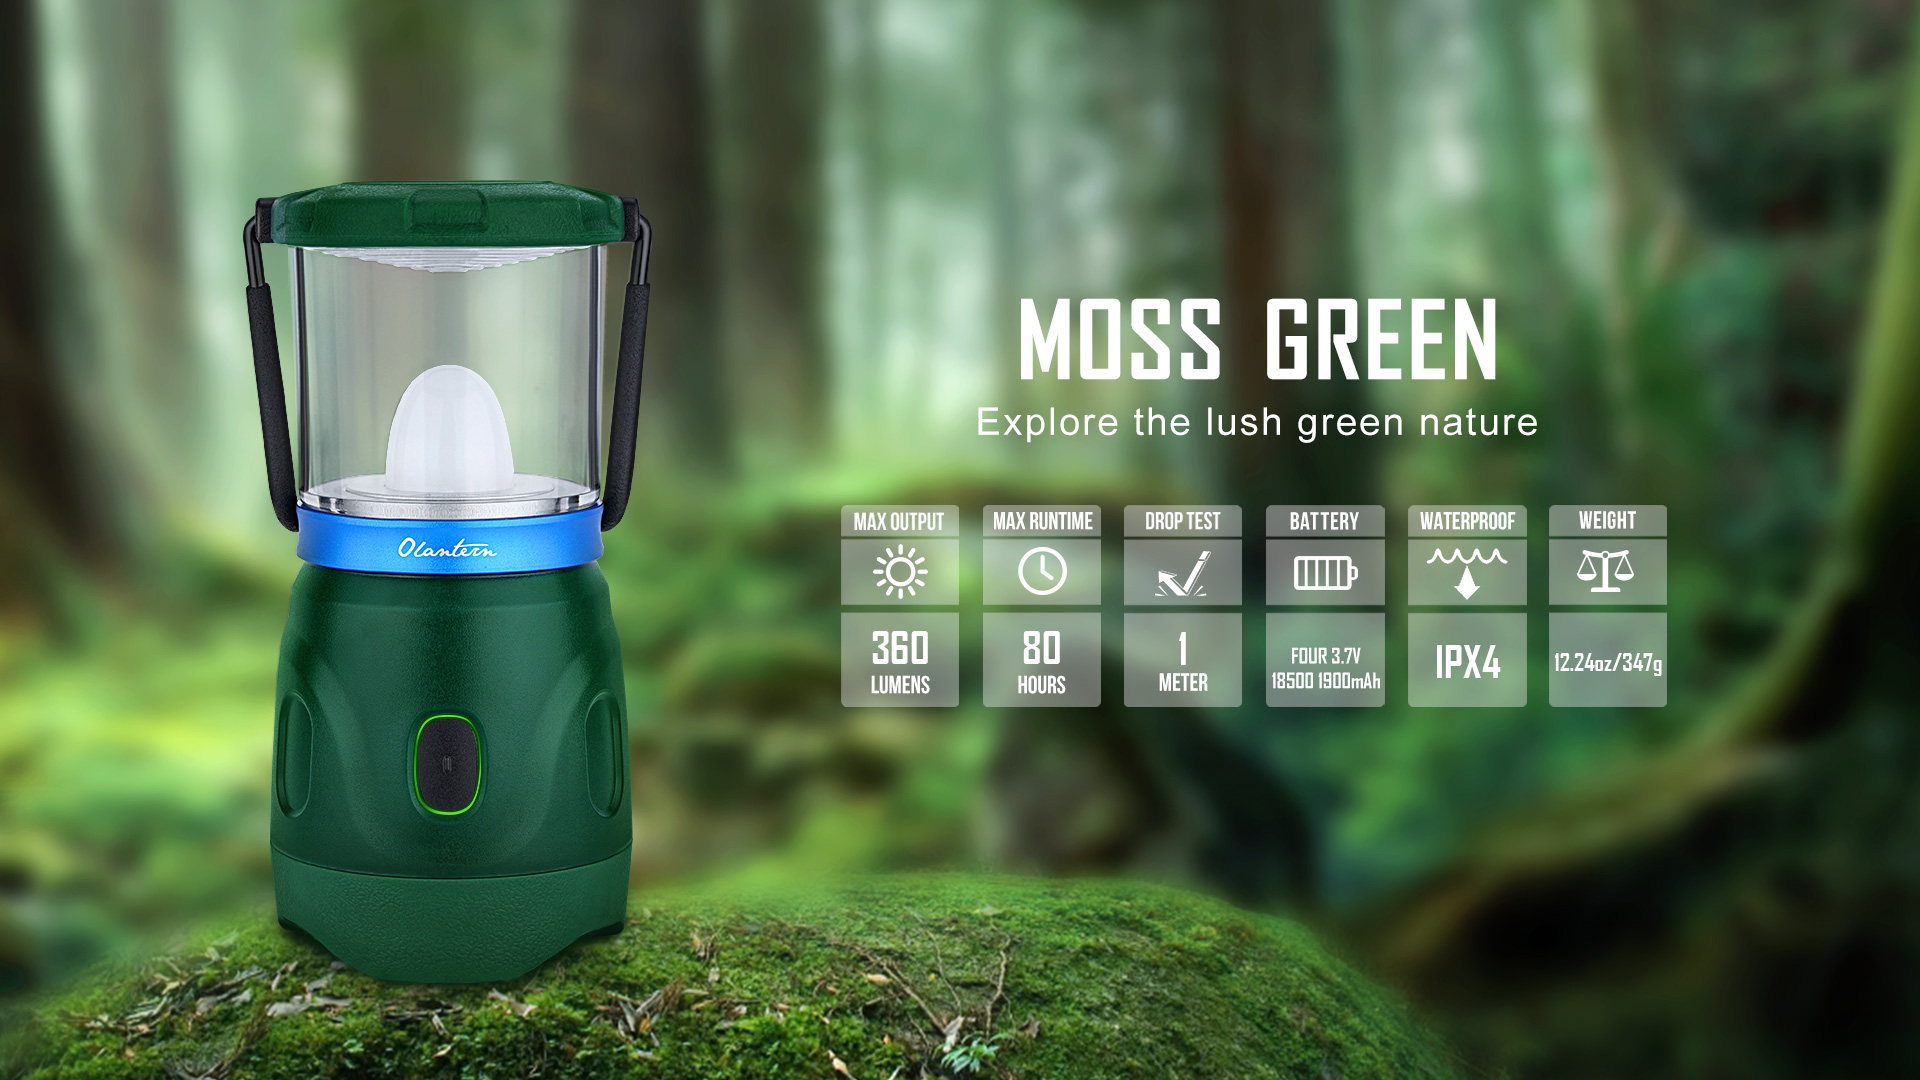 Olantern Rechargeable Camping Lights Moss Green